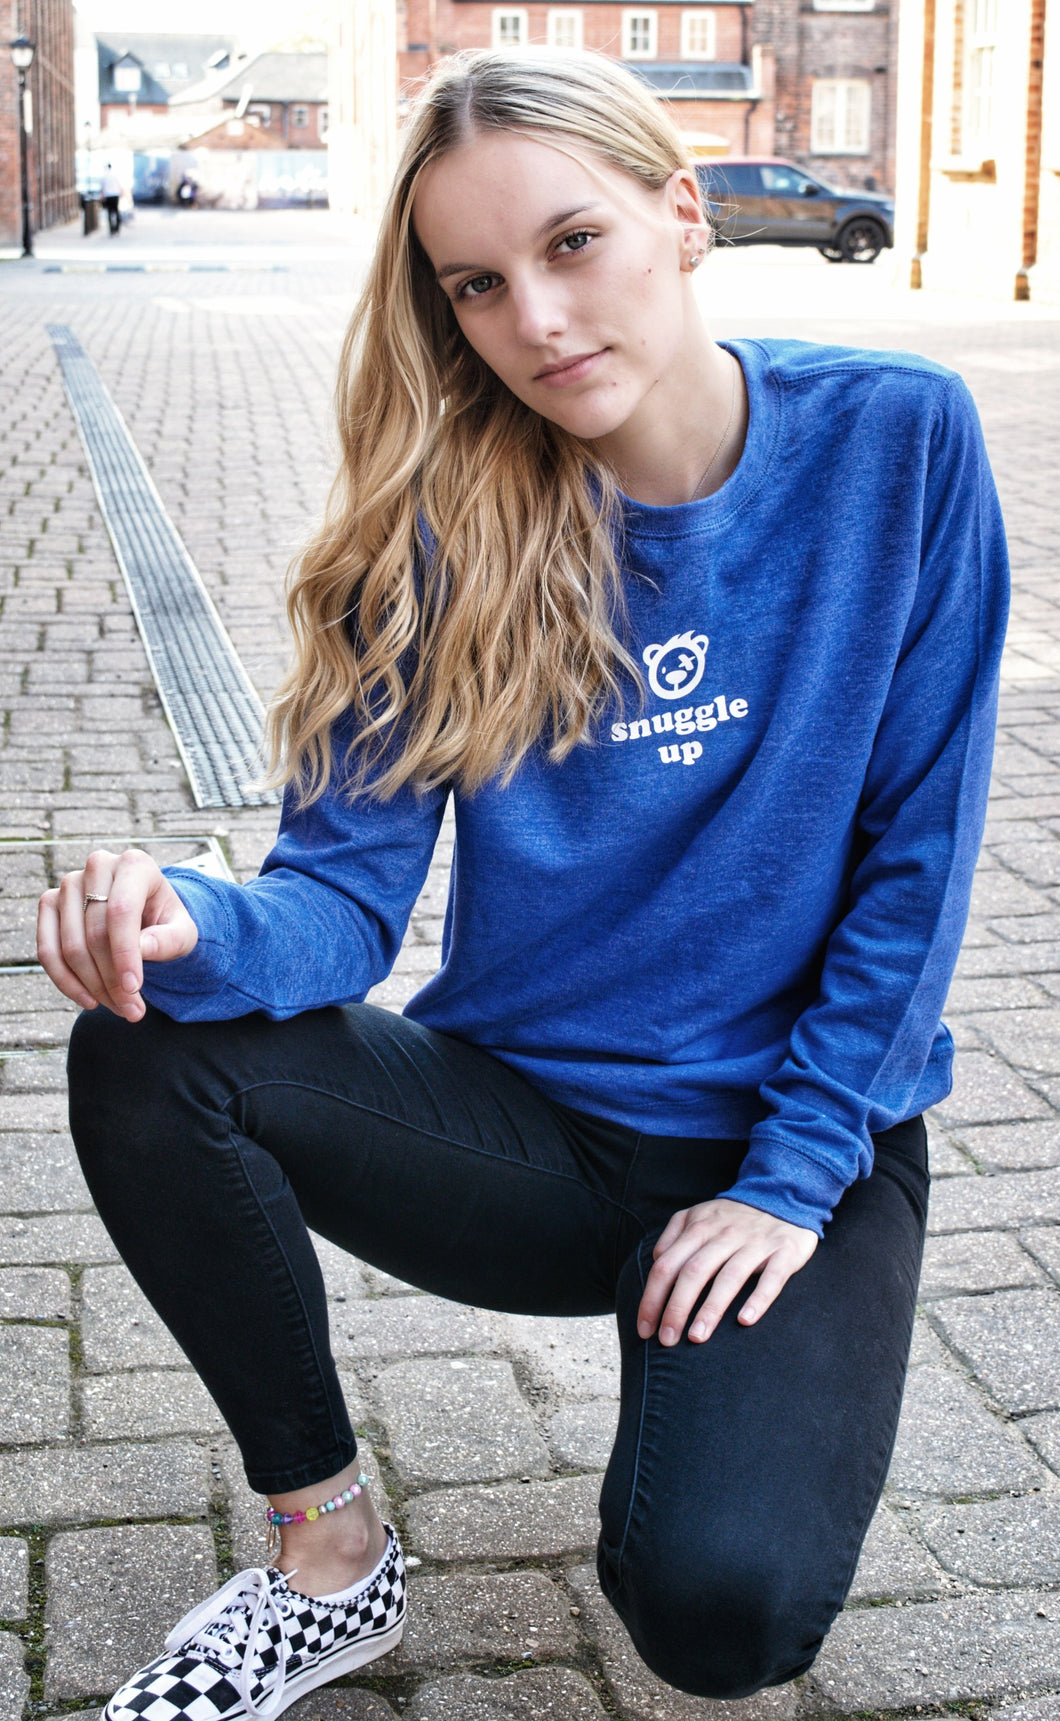 Women's snuggle up sweatshirt